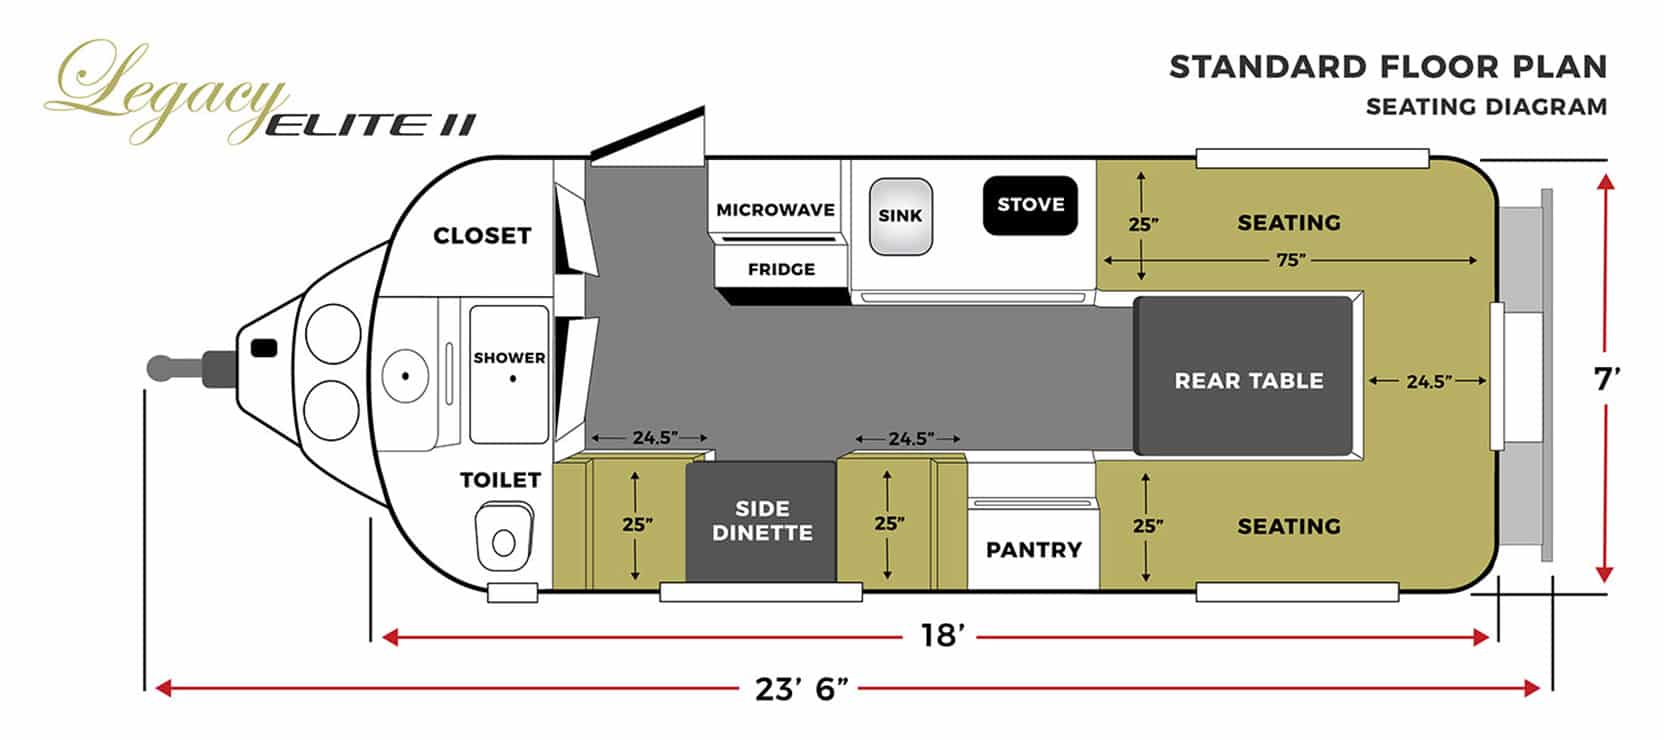 oliver travel trailers legacy elite 2 standard seating floor plan horizontal